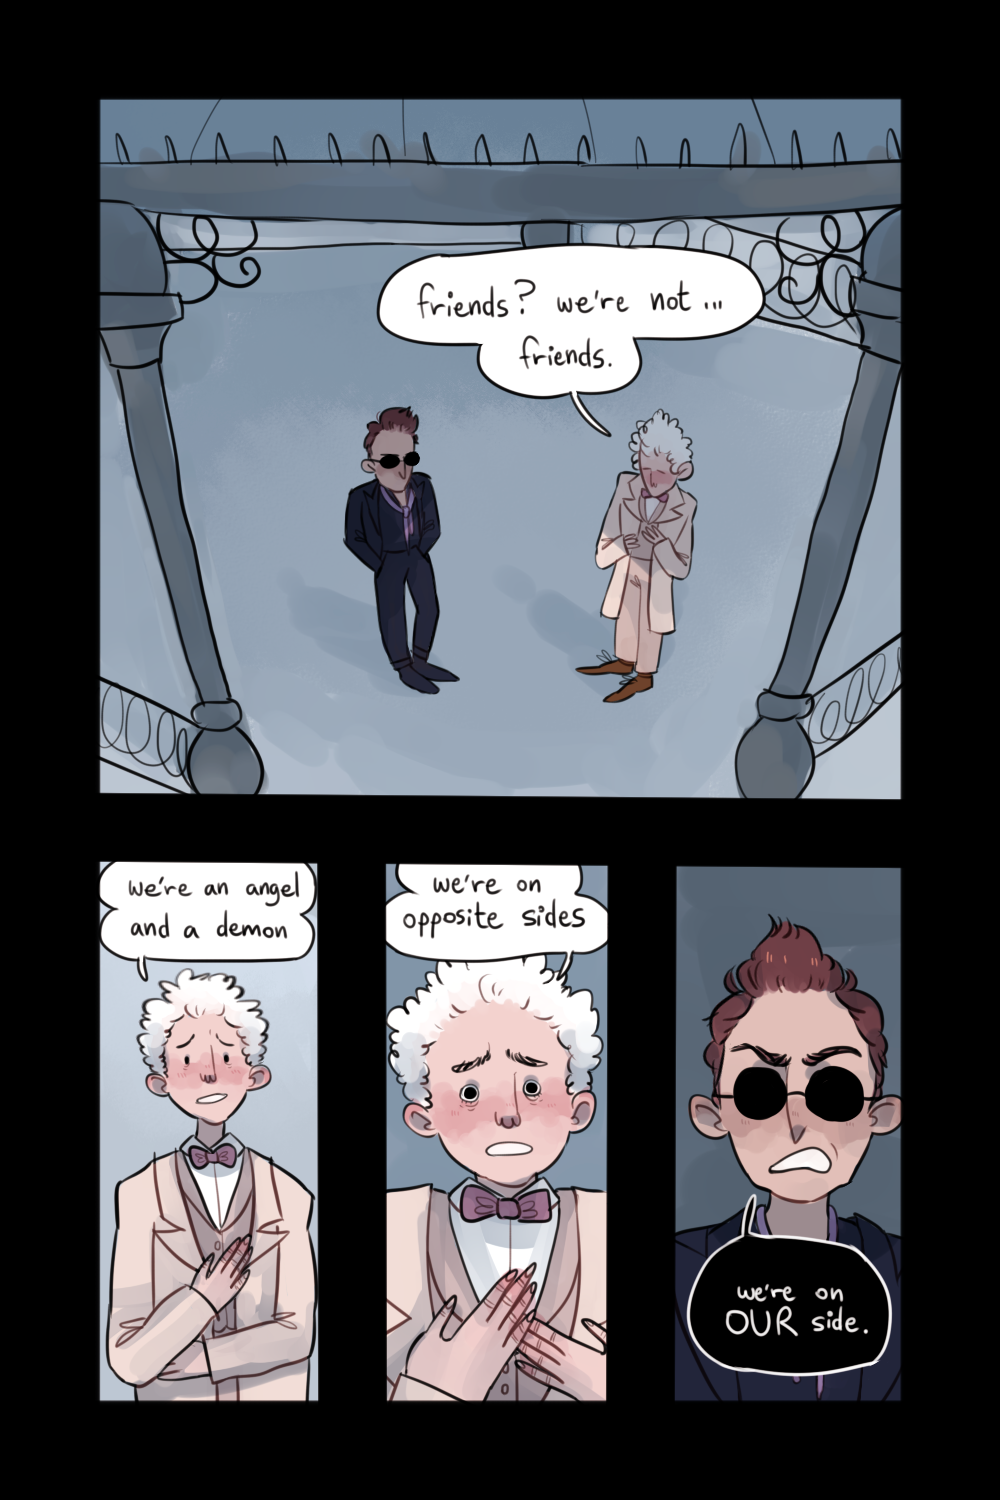 Pin by Victoria Roberts on Good Omens in 2019 | Good omens book